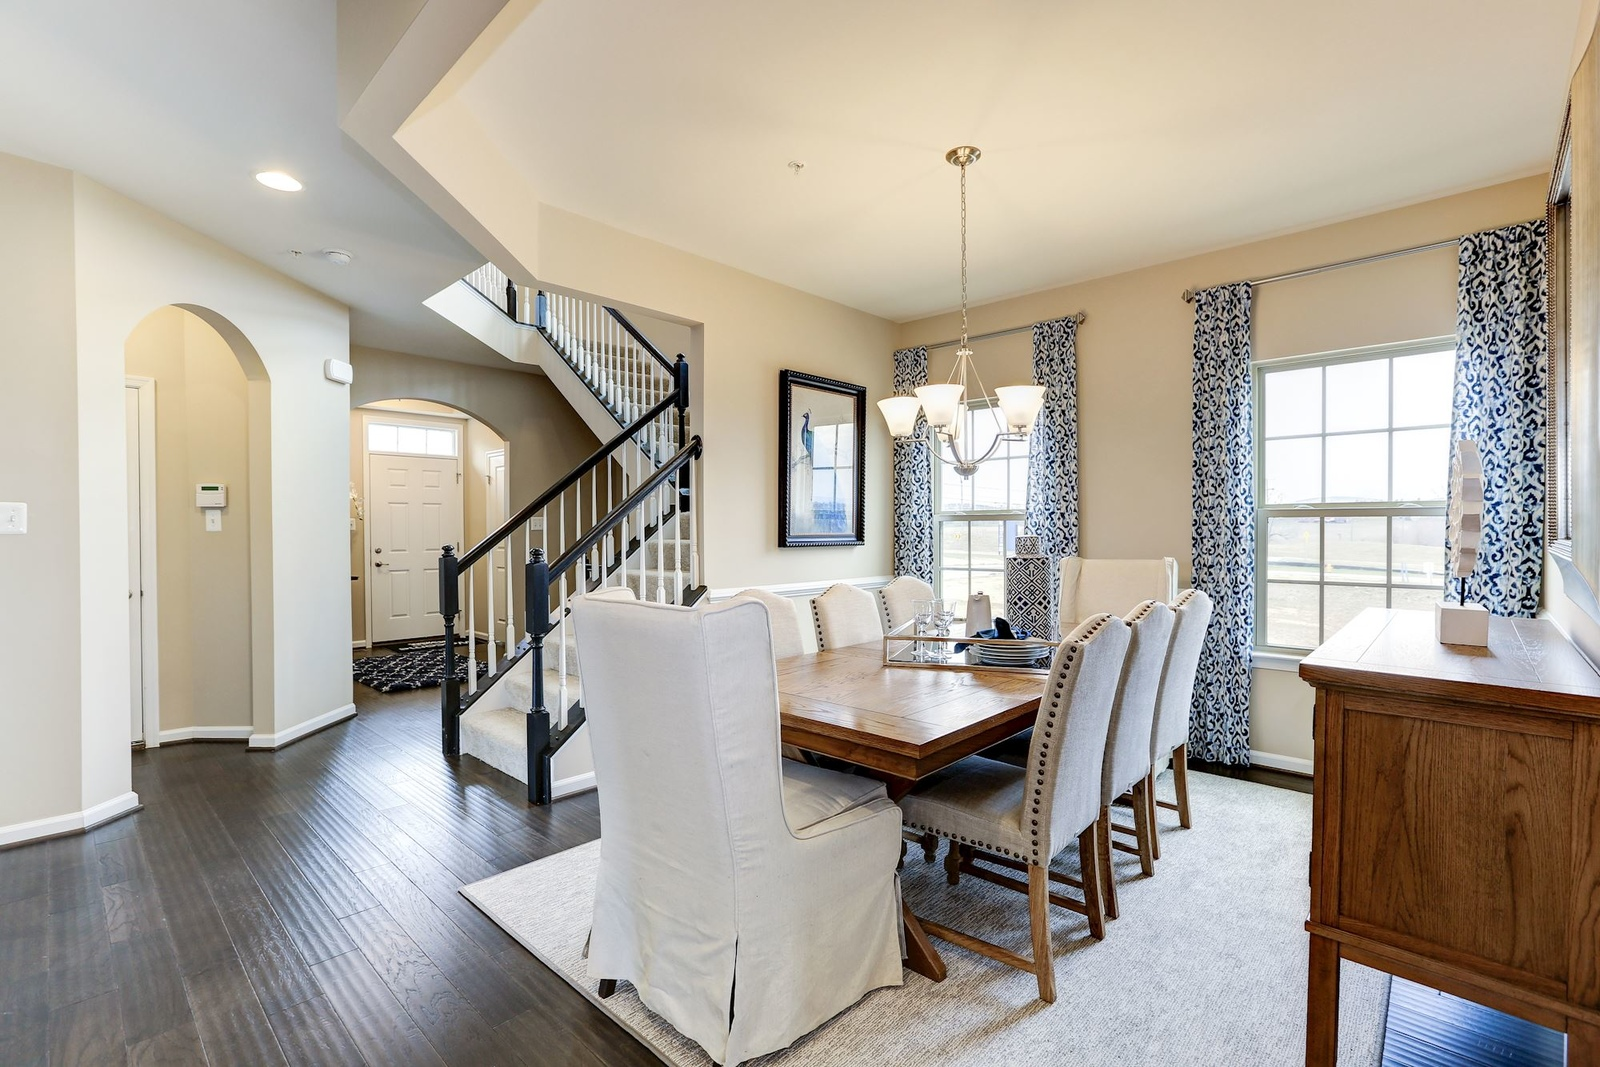 New Homes for sale at Linton At Ballenger Single Family Homes in ...